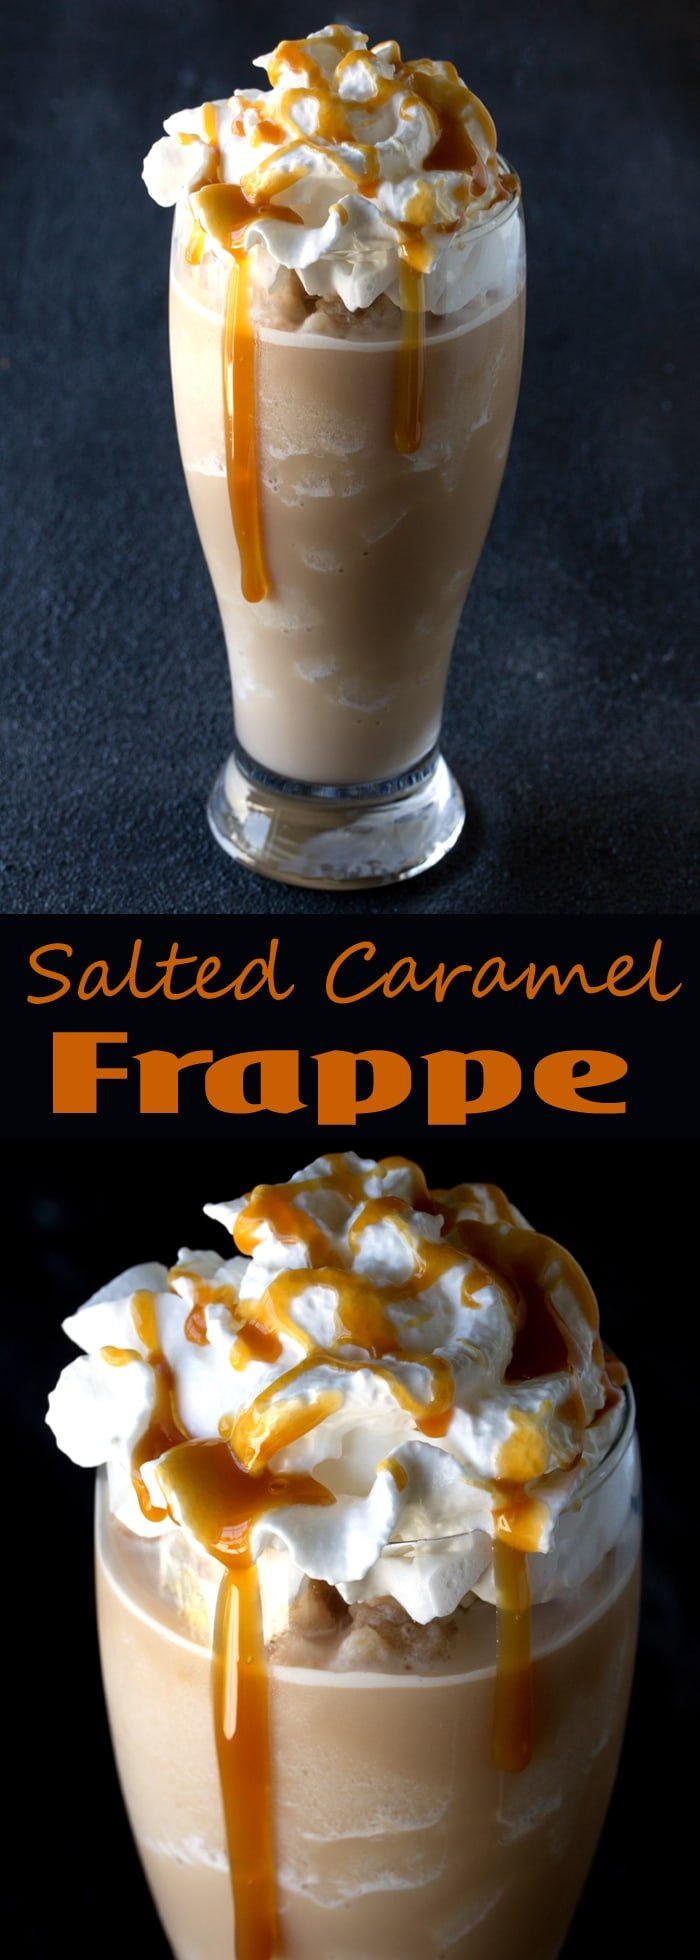 Homemade Salted Caramel Frappes are an easy, cold, refreshing treat ready in just 5 minutes. Save your dollars and make it yourself at home!